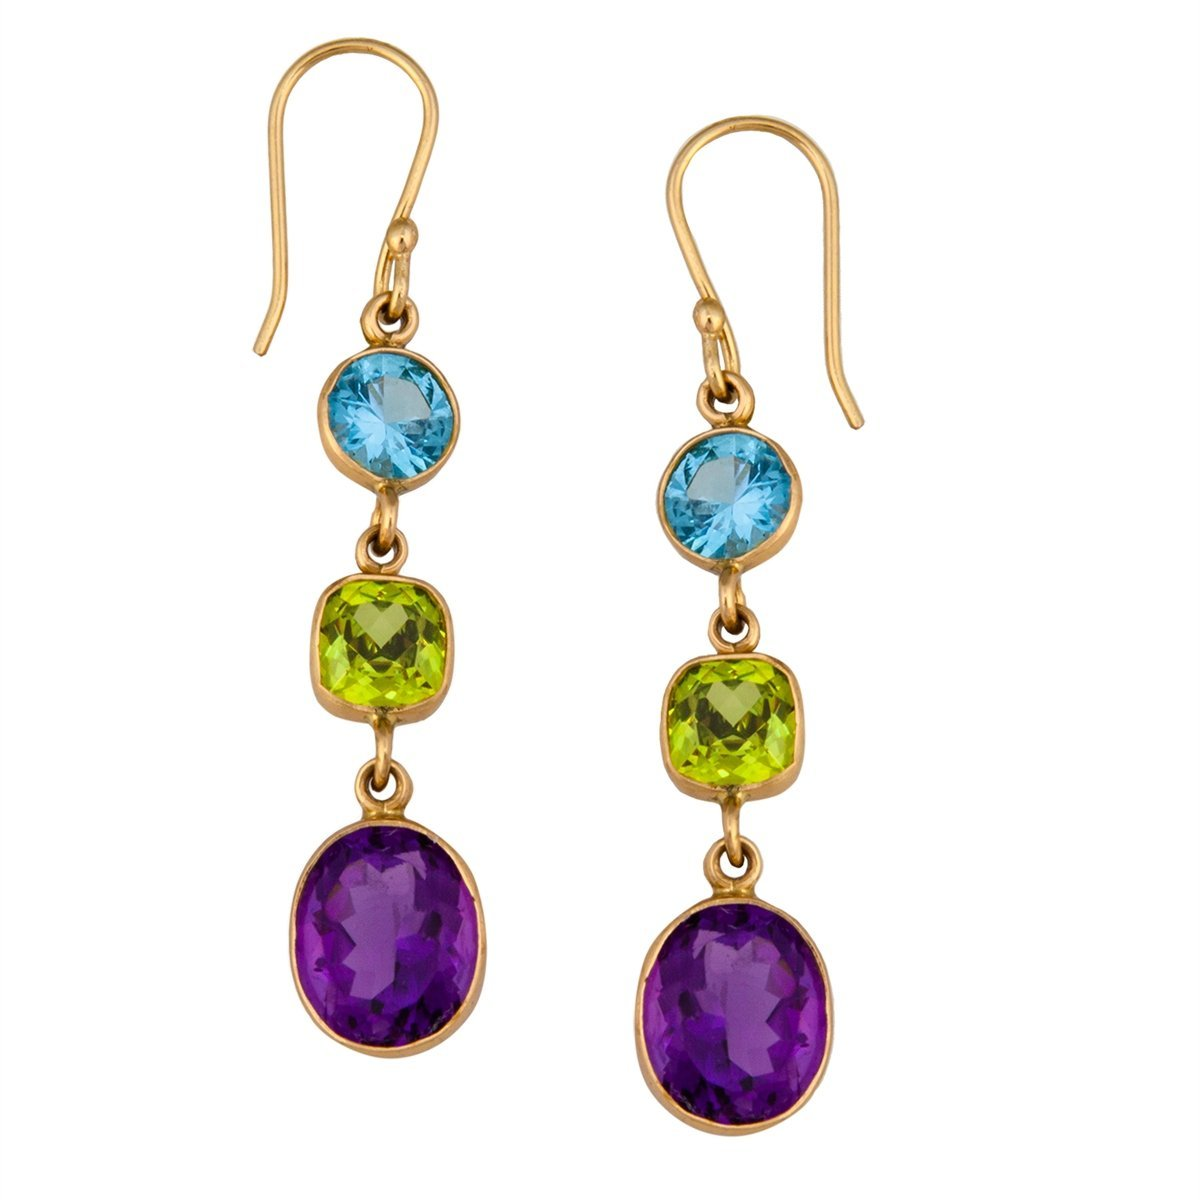 Alchemia Multi-Gemstone Earrings | Charles Albert Jewelry